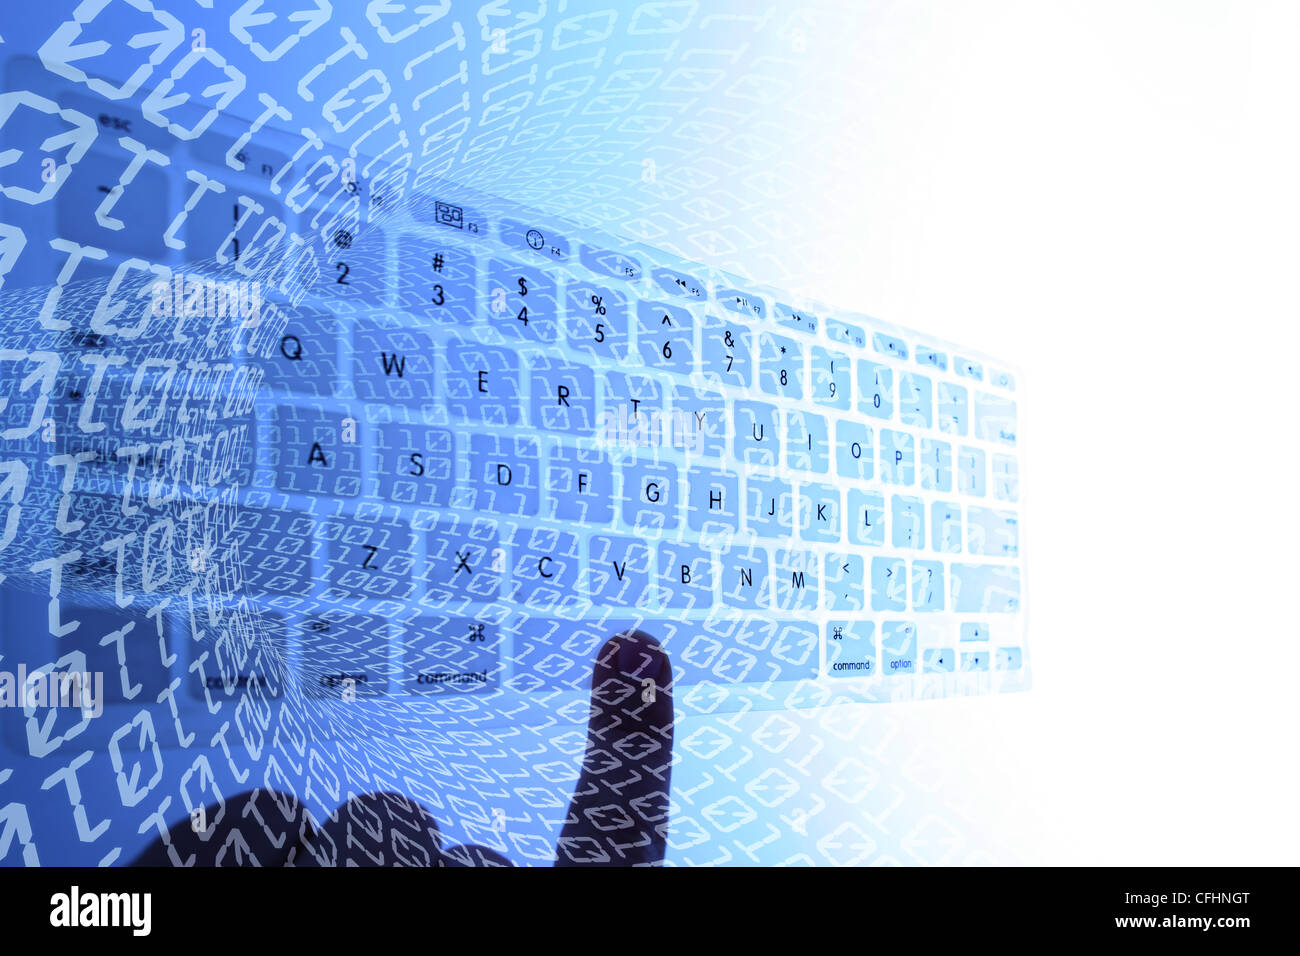 Conceptual image for data inetrnet and binary background - Stock Image